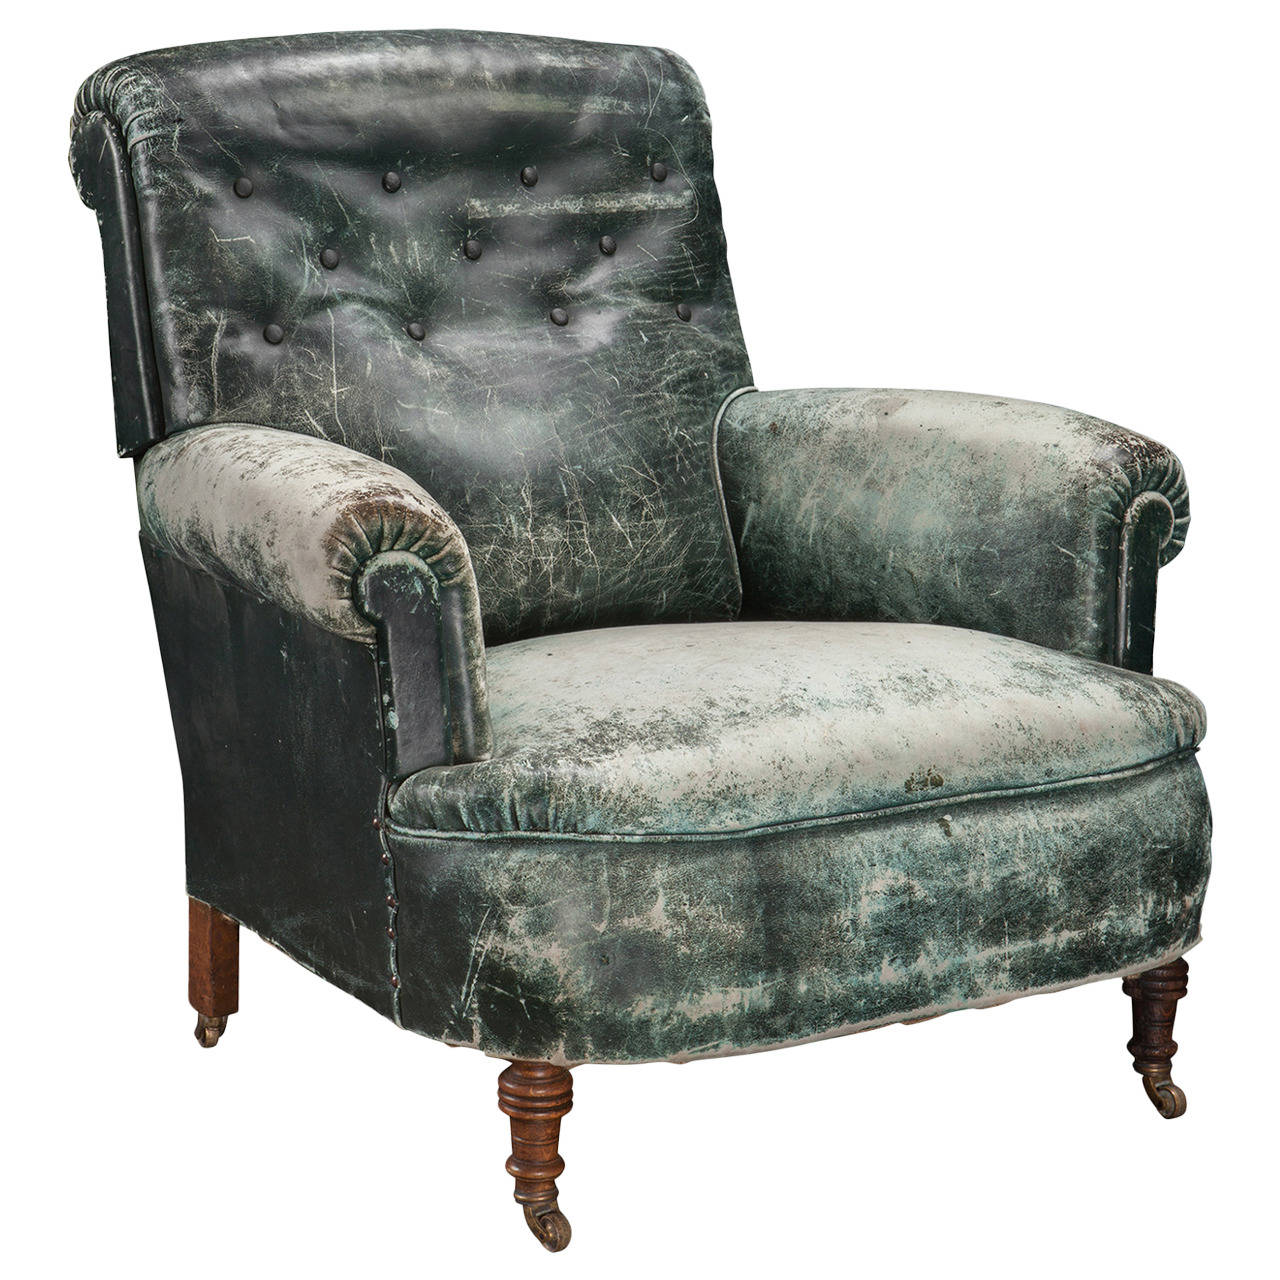 Weathered Green Leather Armchair For Sale